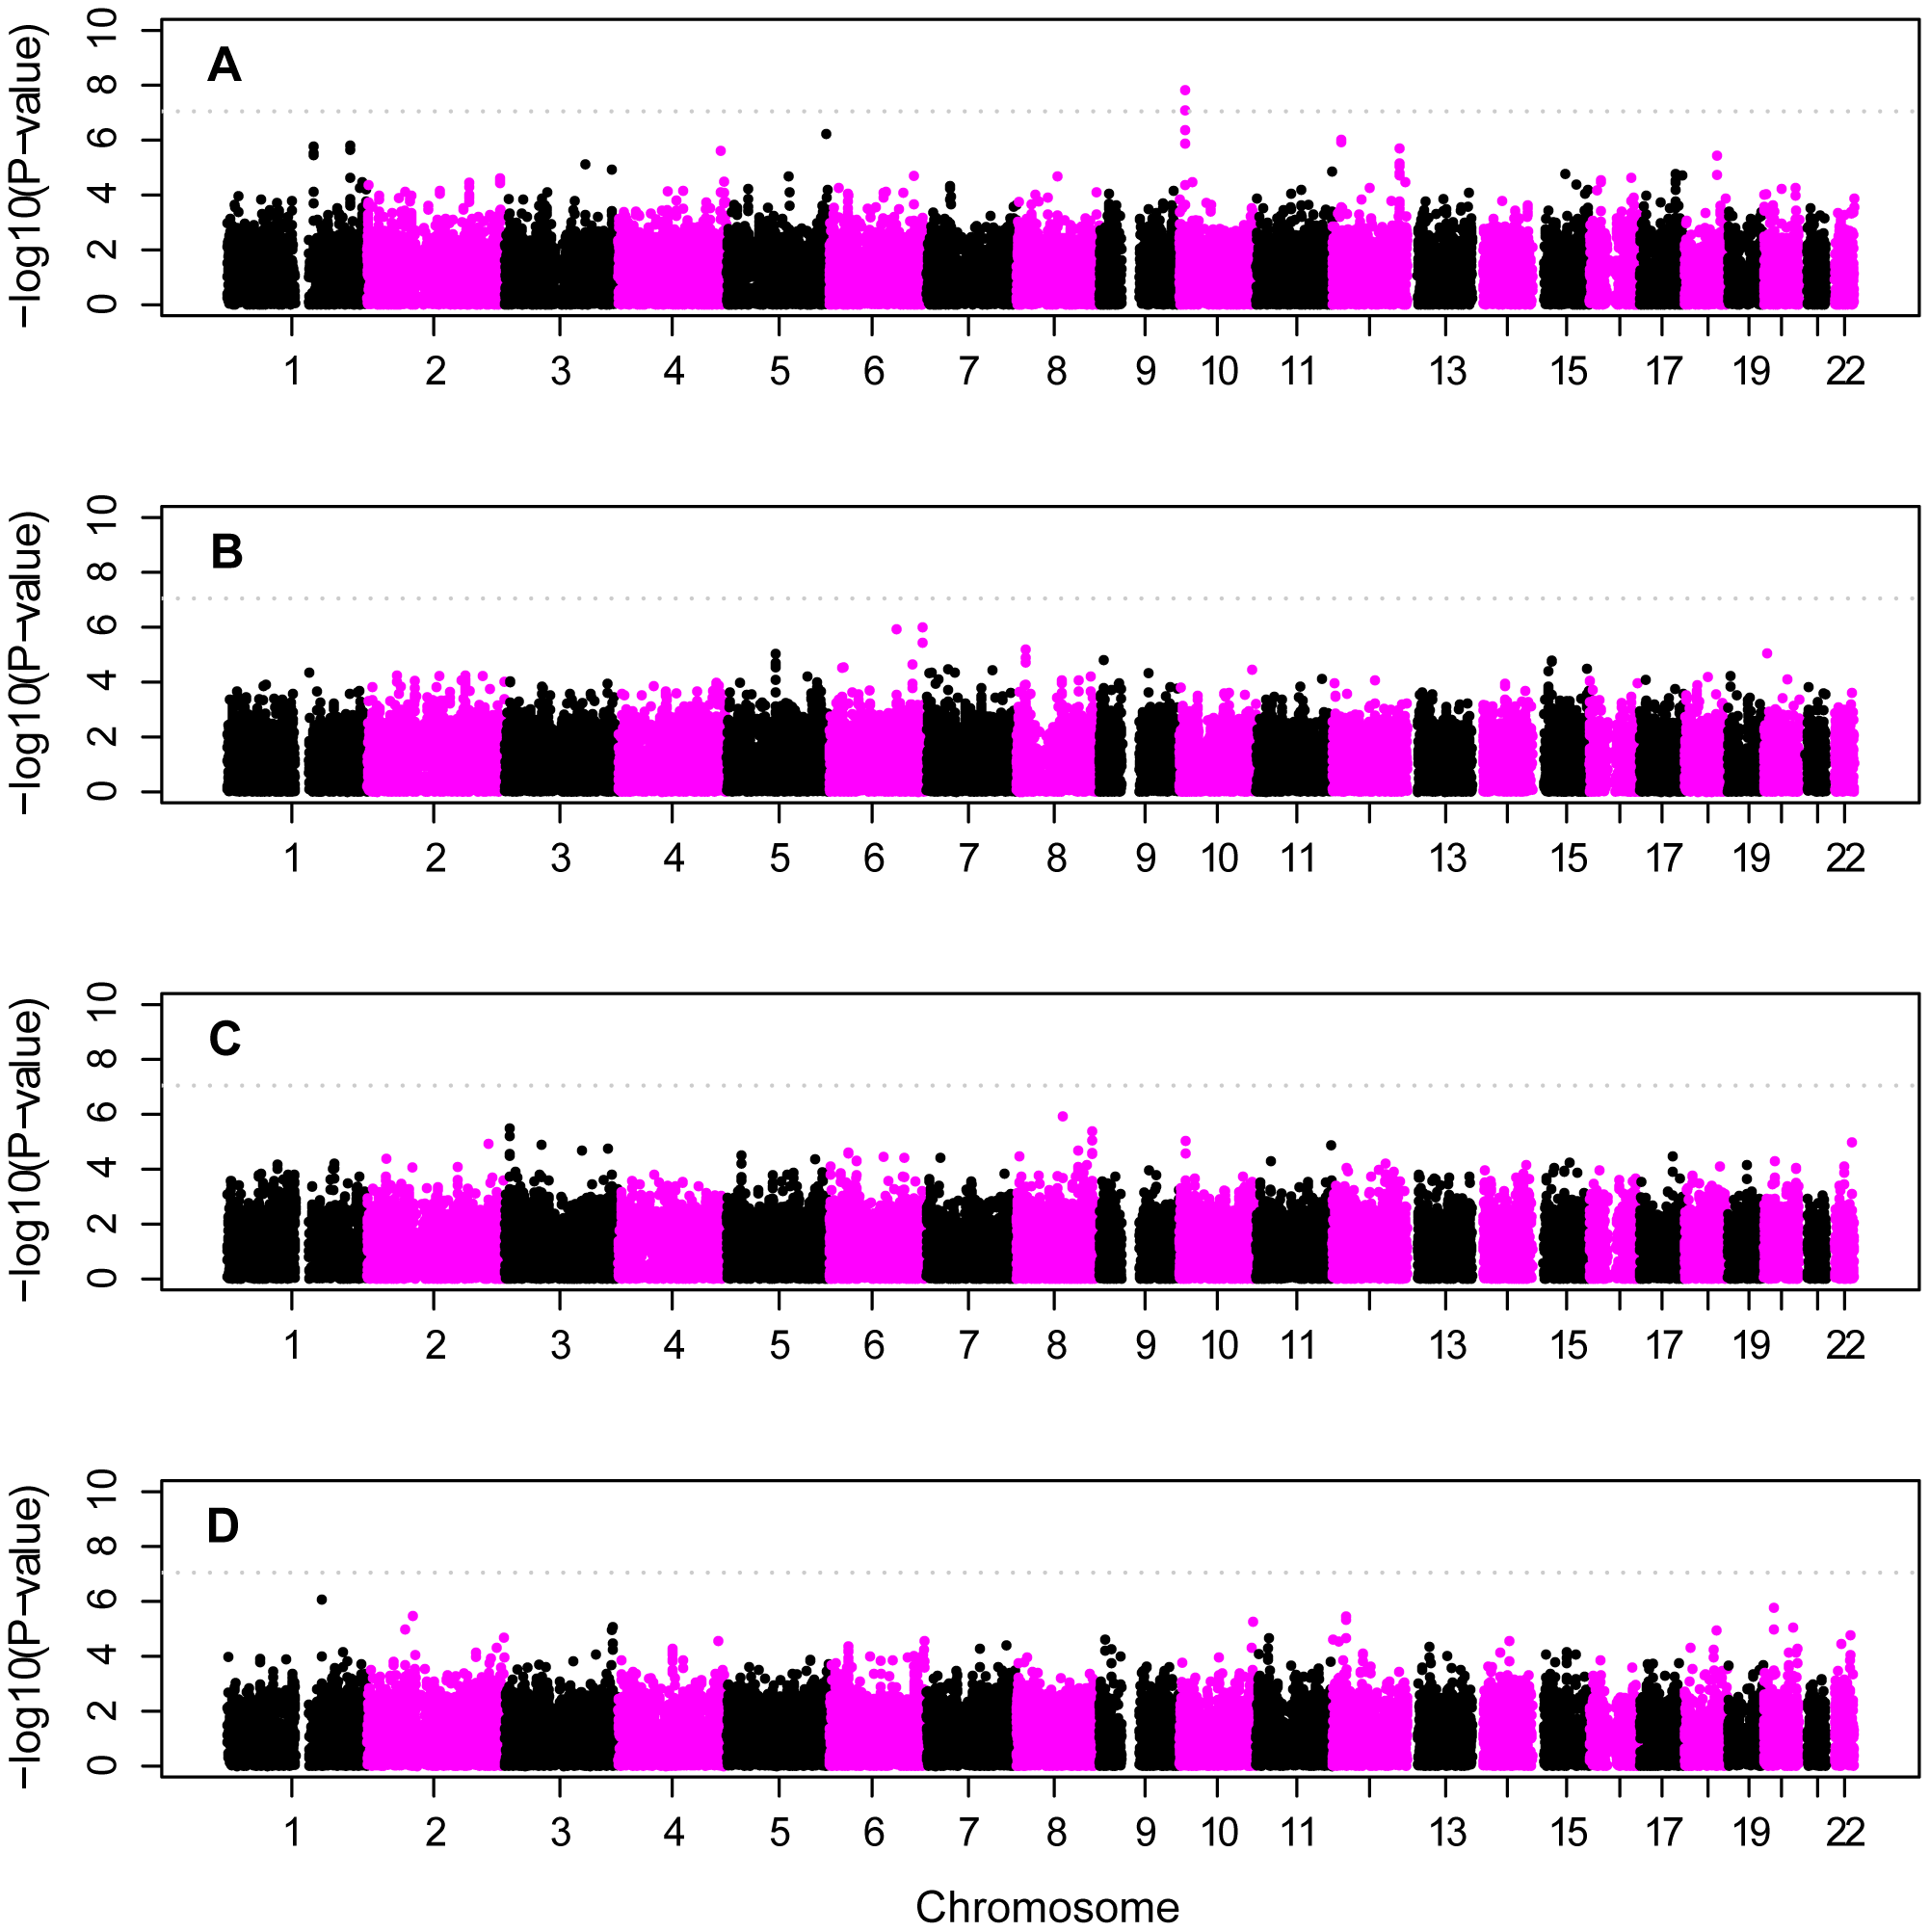 Stratified analysis of <i>APOE</i>-defined subgroups of all European-American subjects.